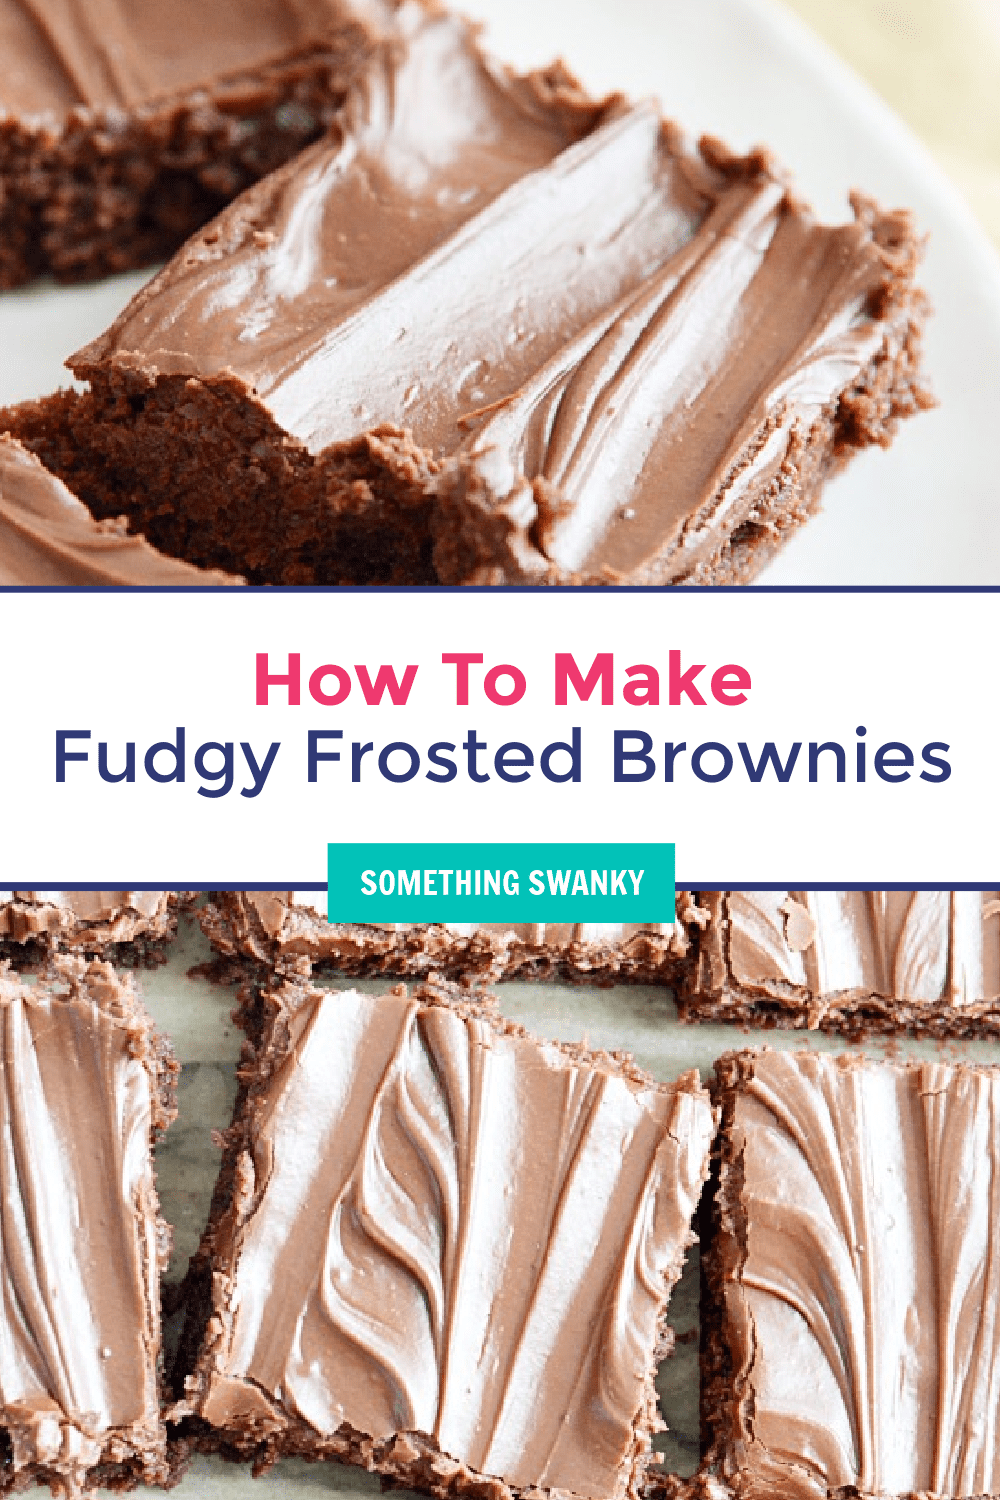 Fudgy Frosted Brownies Recipe